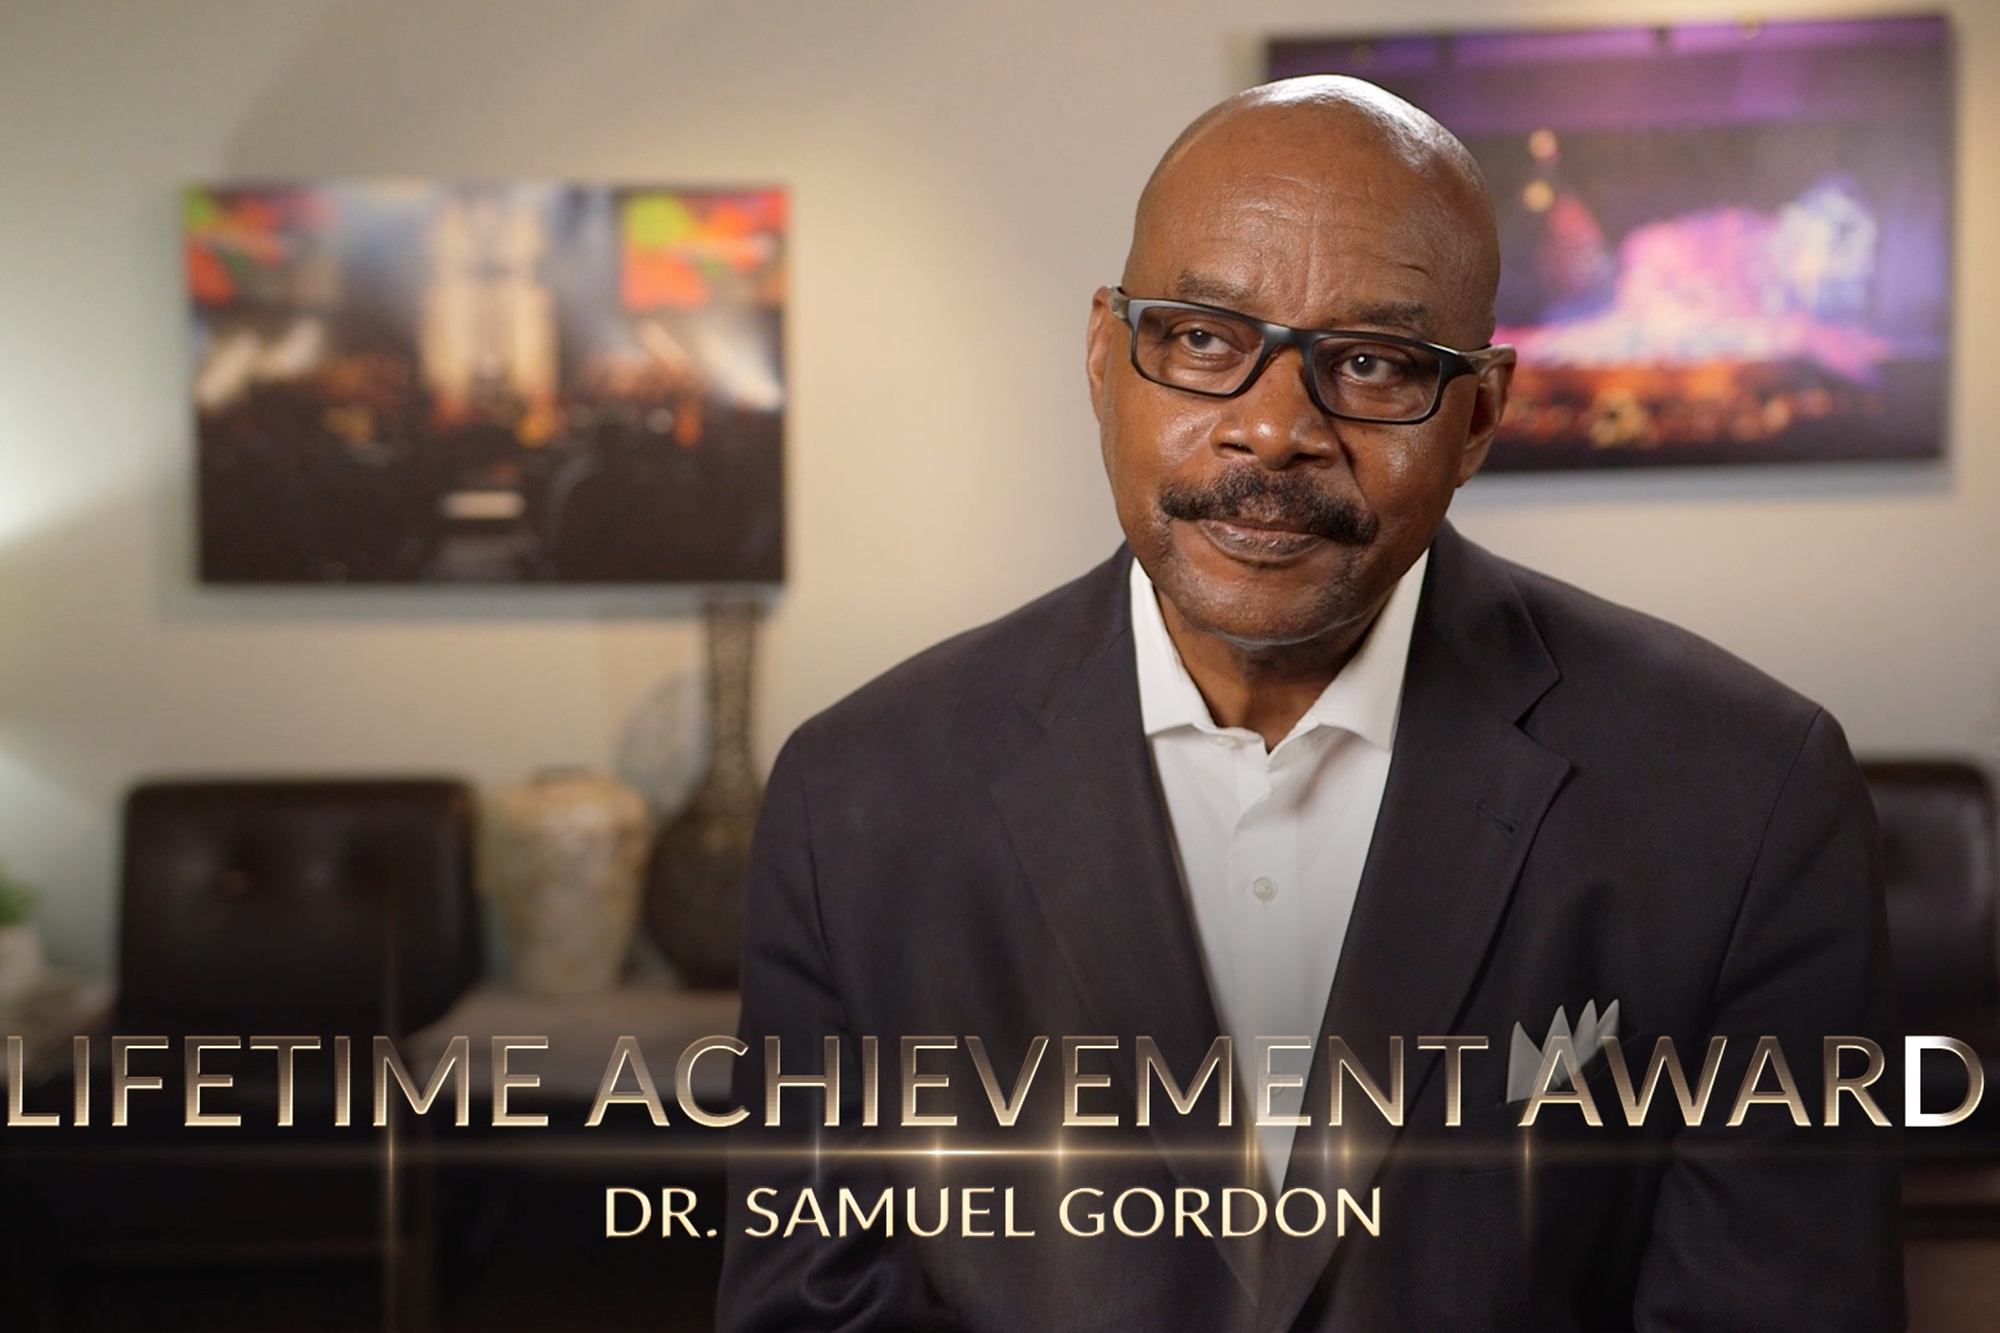 Lifetime Achievement Award 2019